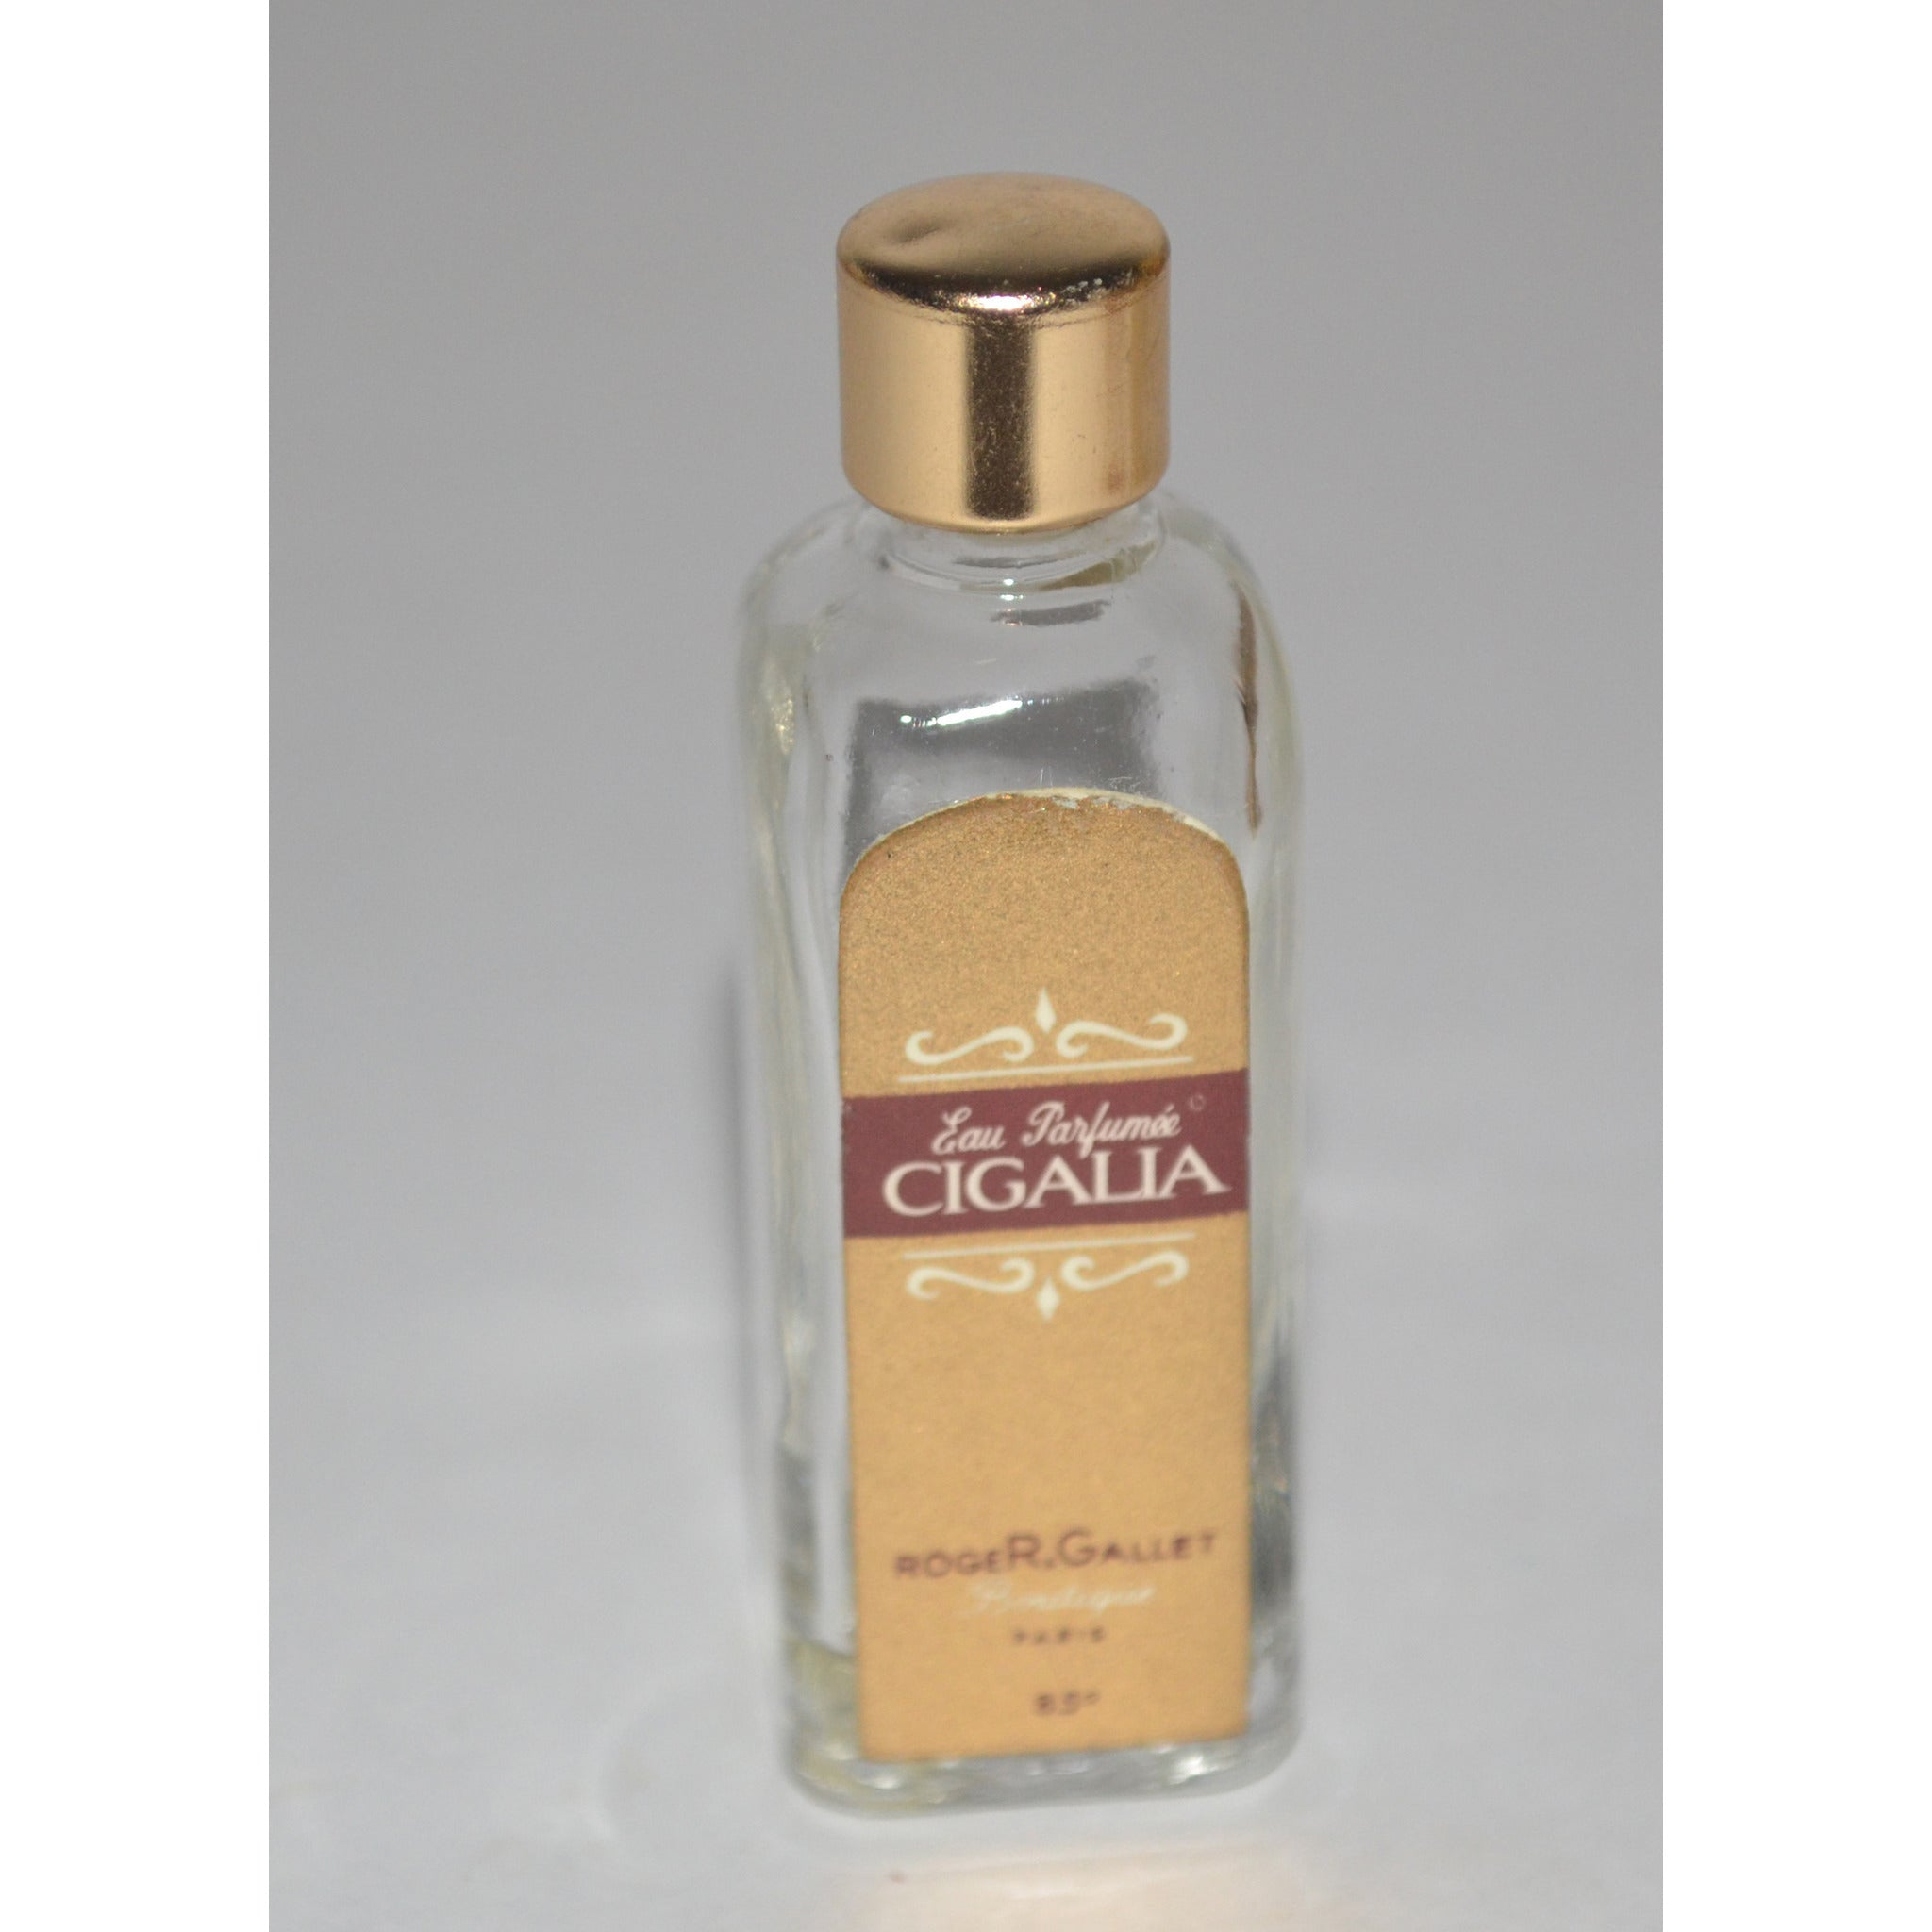 Vintage Cigalia Eau Parfume Mini By Roger & Gallet